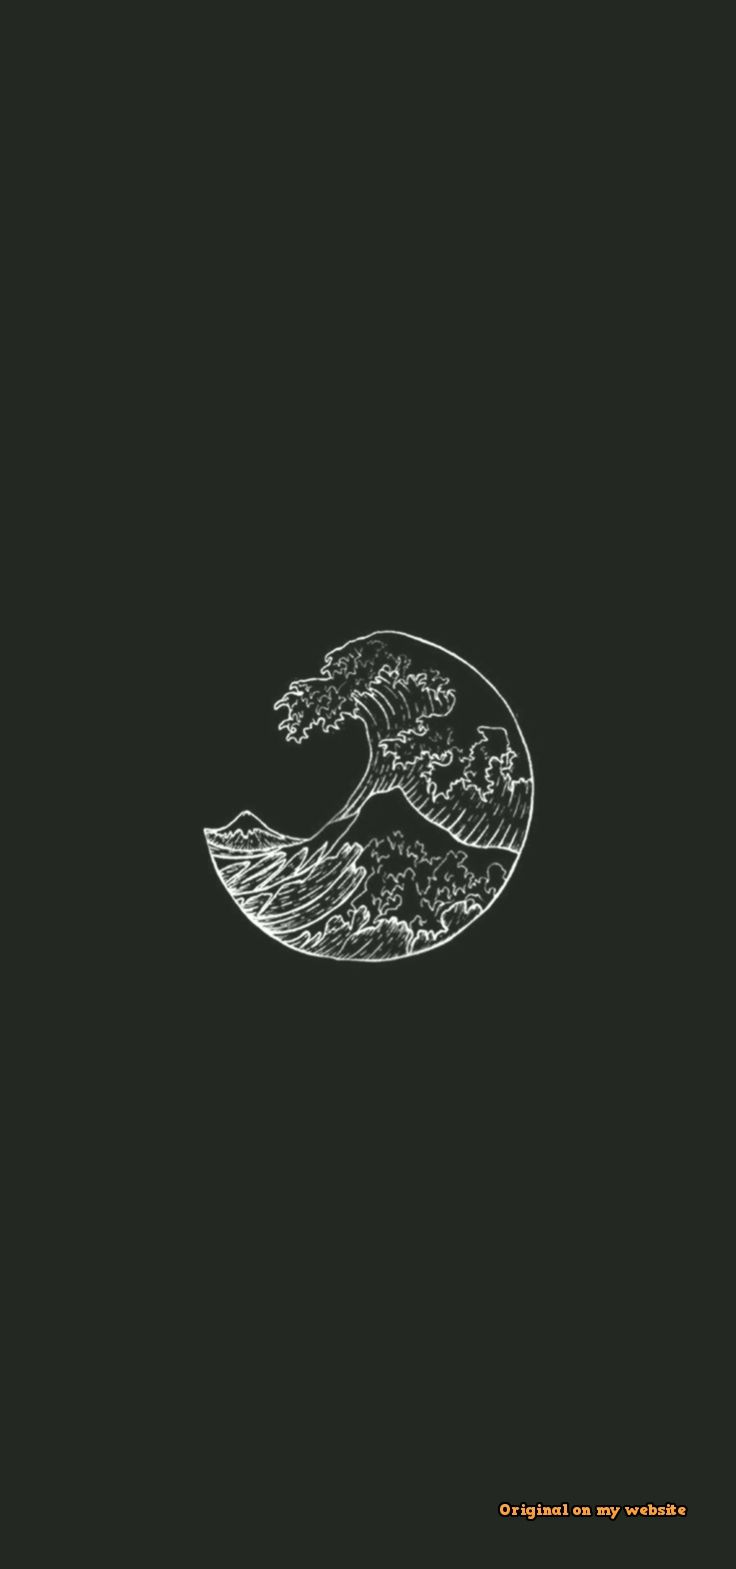 Account Suspended Drawing wallpaper Black aesthetic wallpaper 736x1569